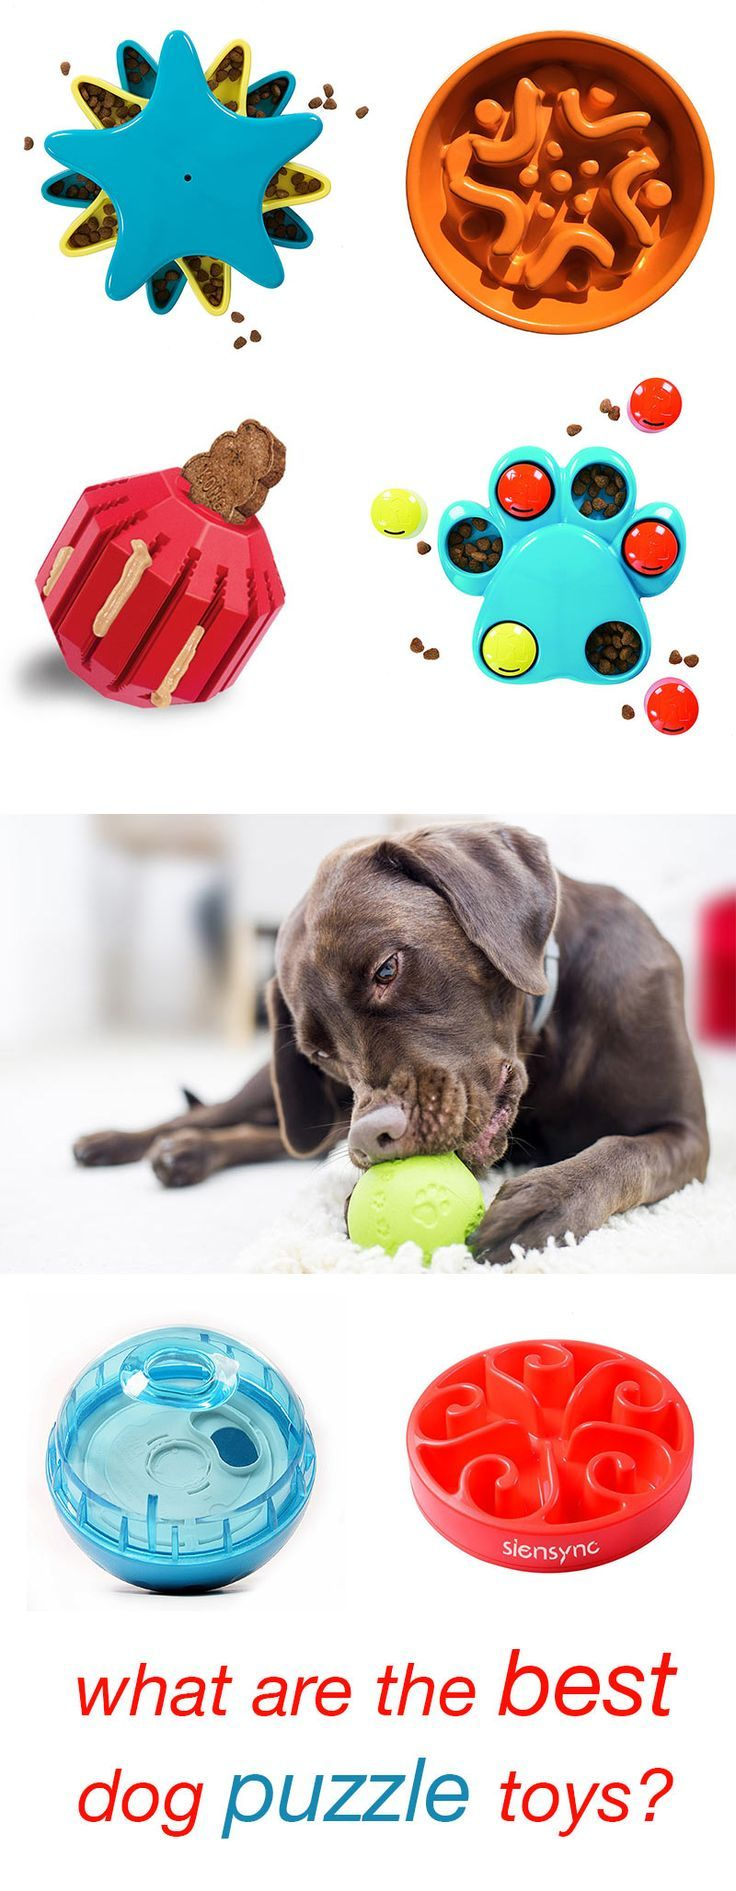 Best Dog Puzzle Toys The Top Choices Reviewed The Best Dog